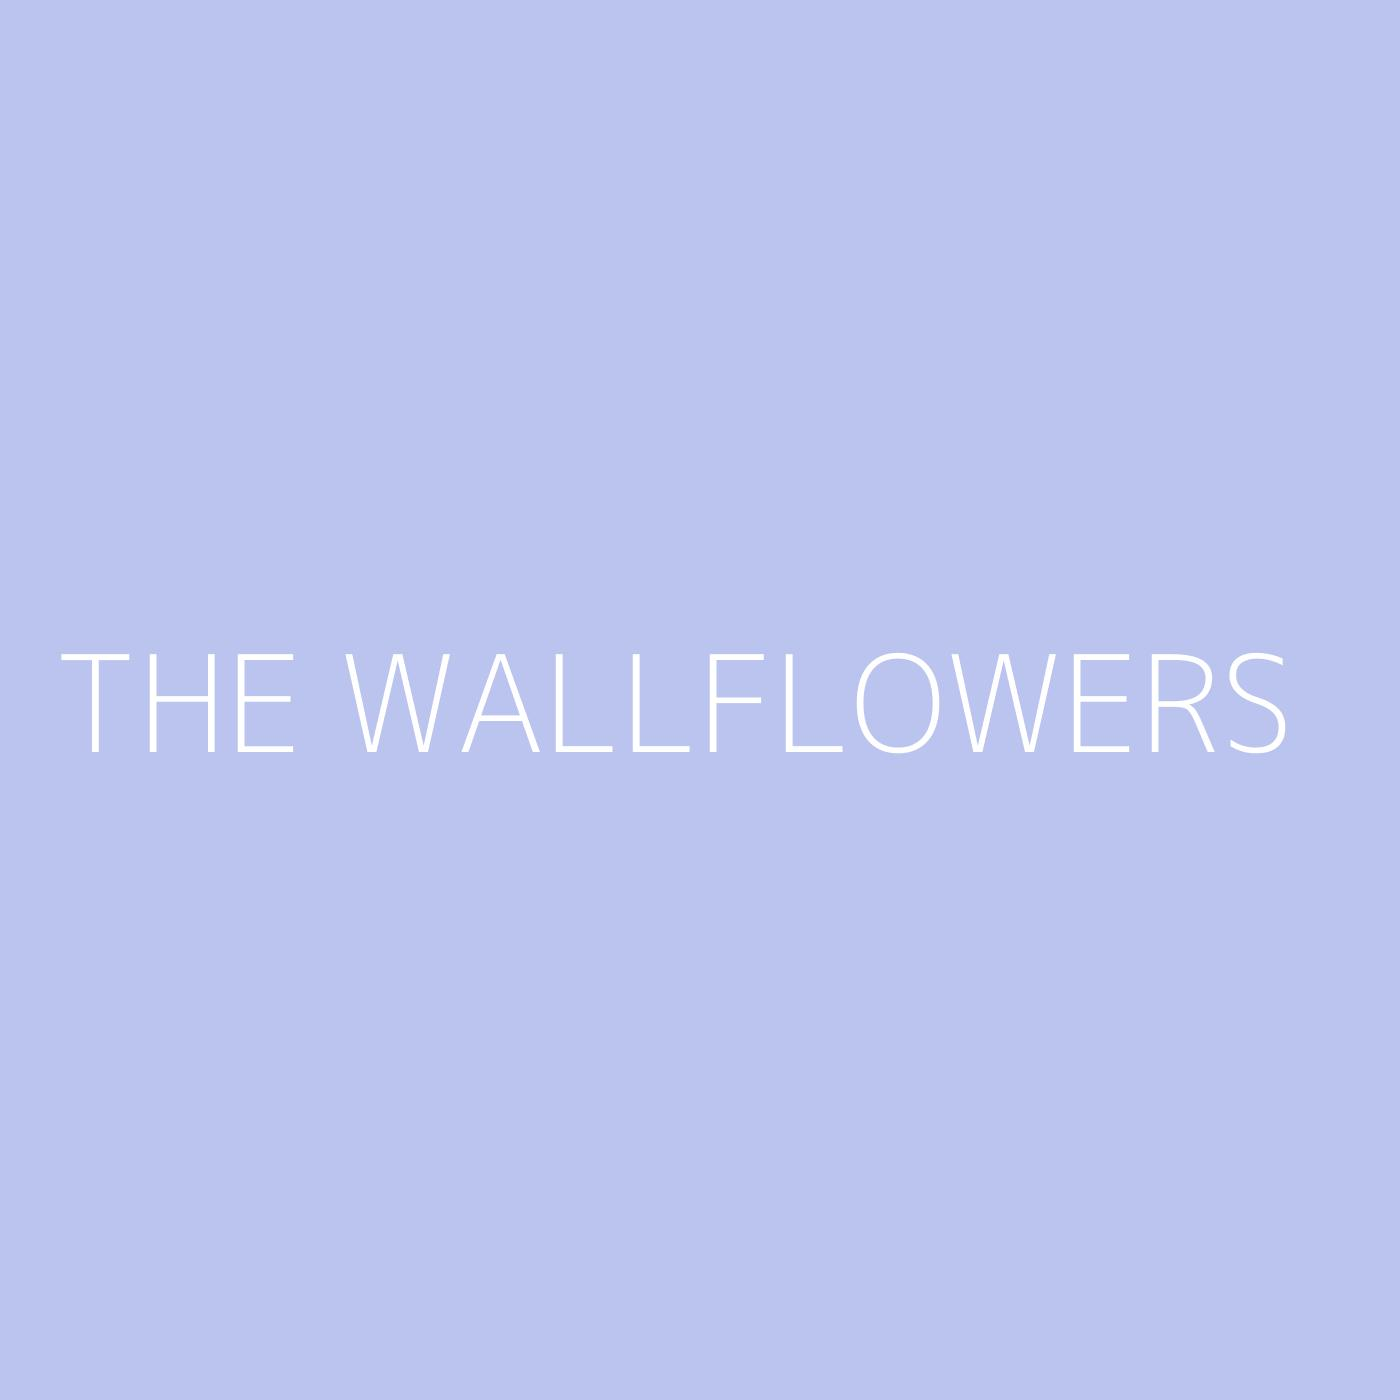 The Wallflowers Playlist Artwork